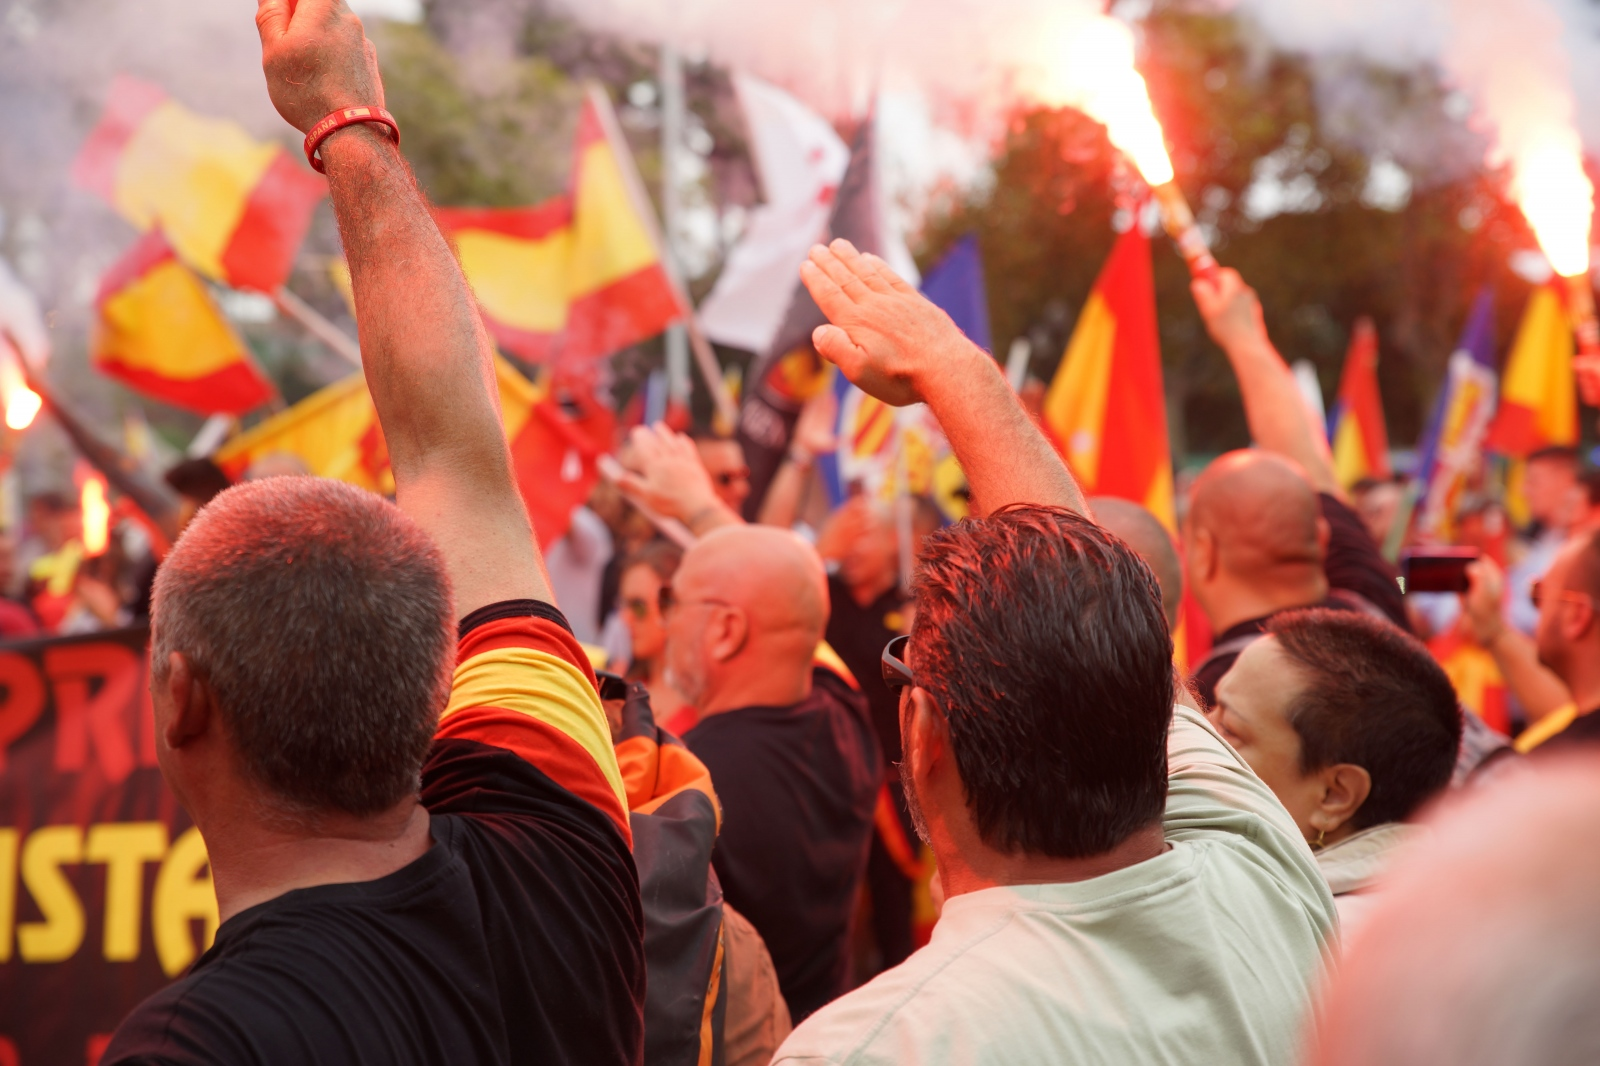 Spanish fascists openly show Nazi salutes for their annual meeting on the Spanish national holiday. Montjuïc, Barcelona, October 12, 2018.